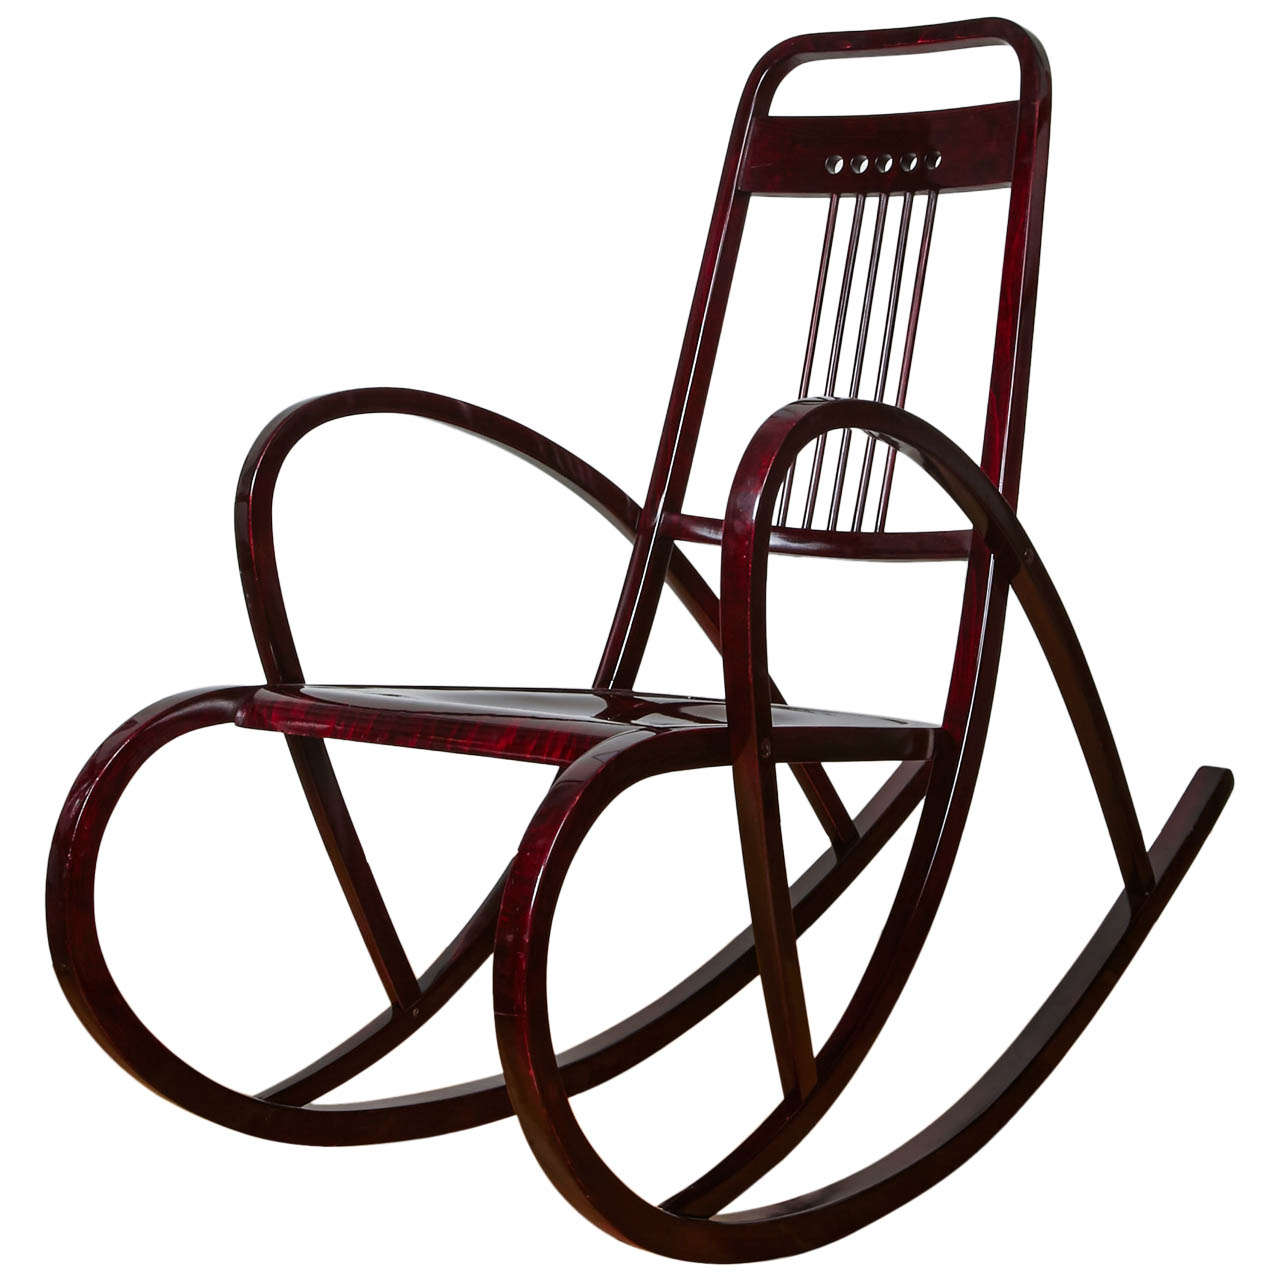 Charming Viennese Secession Rocking Chair By Thonet, Circa 1911 1